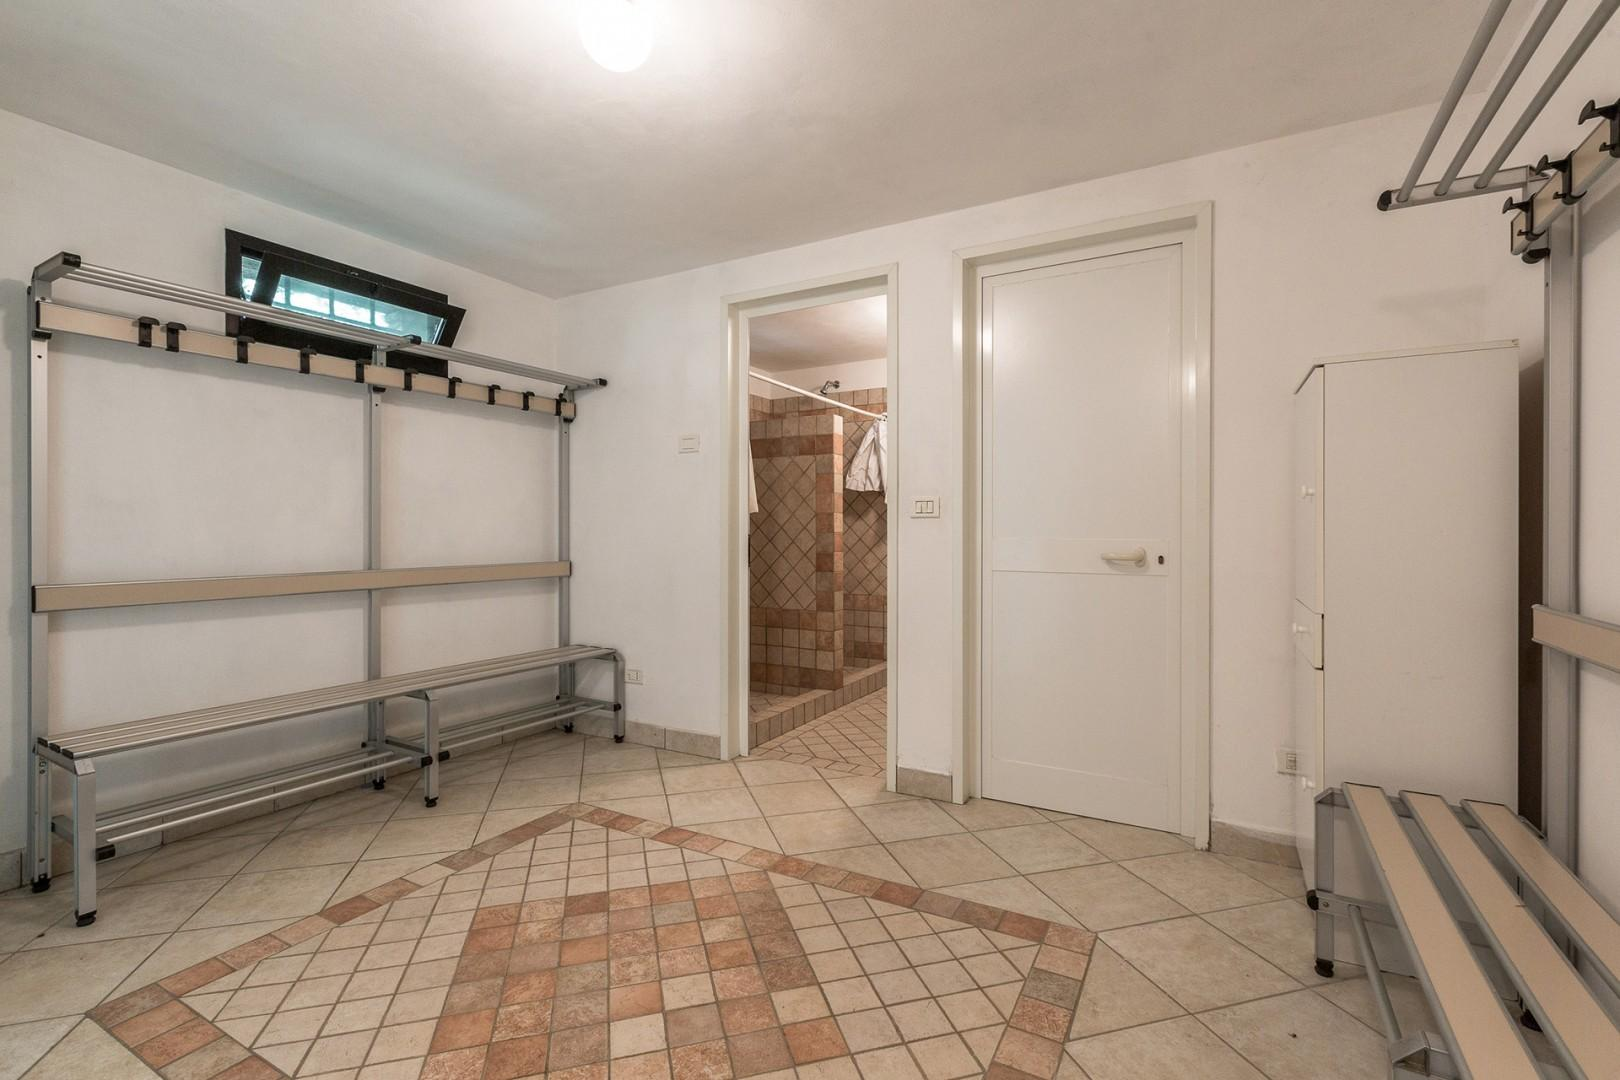 Changing room and full bathroom in the pool house below the pool.